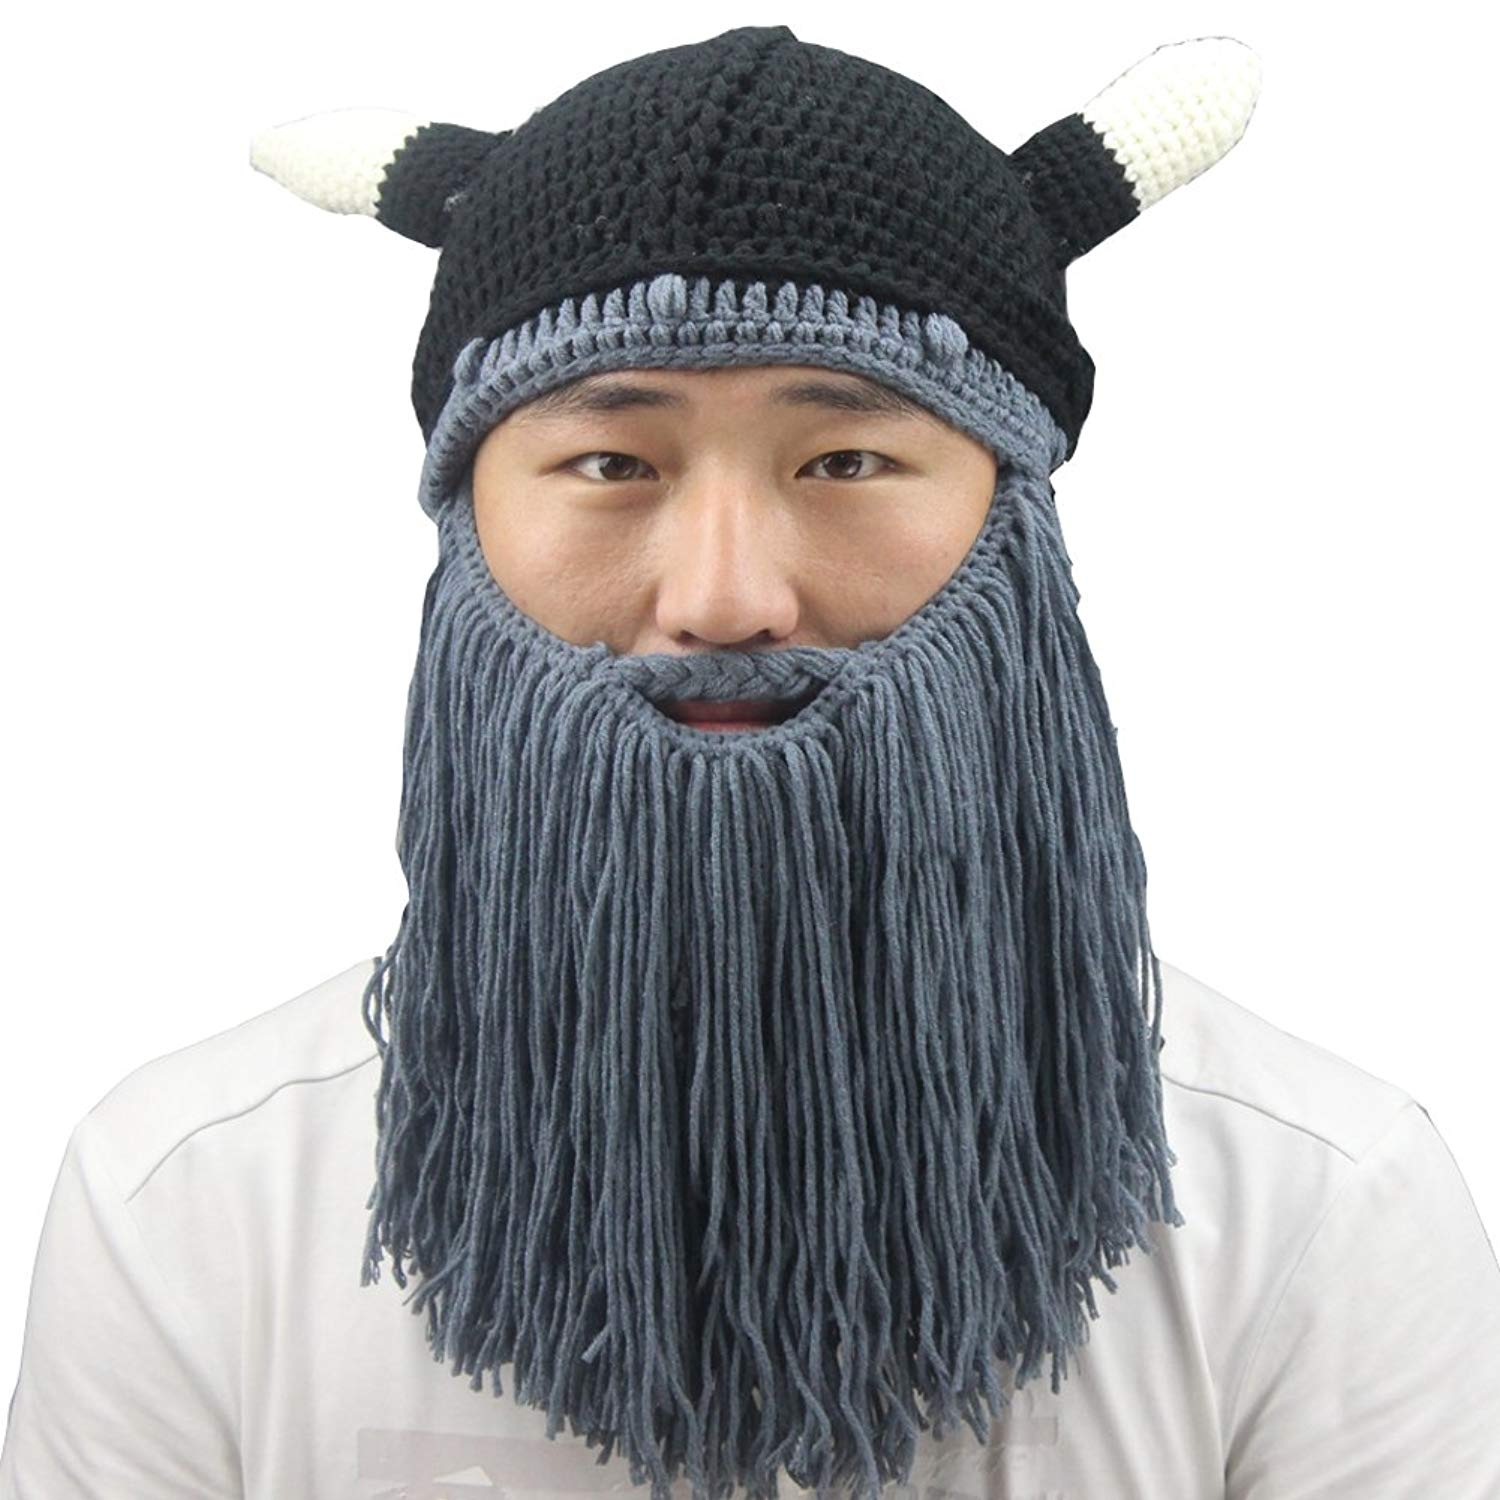 Get Quotations · Men s Cotton Winter Knit Ski Beard Mustache Beanies Hat  Cap Face Mask With Horns c97058cf4f6